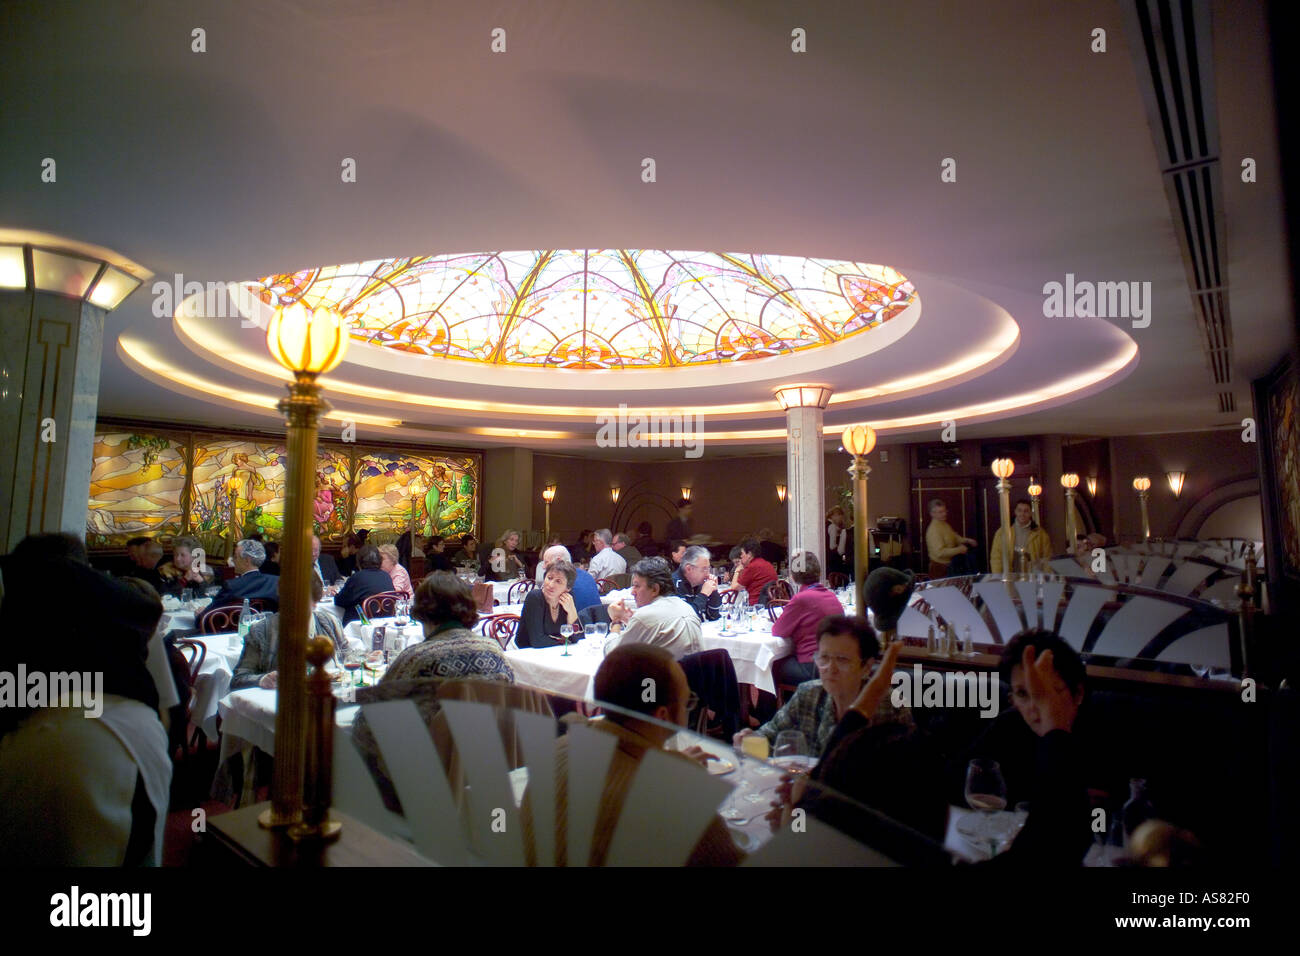 Stained Glass Window Restaurant Brasserie Stock Photos & Stained ...